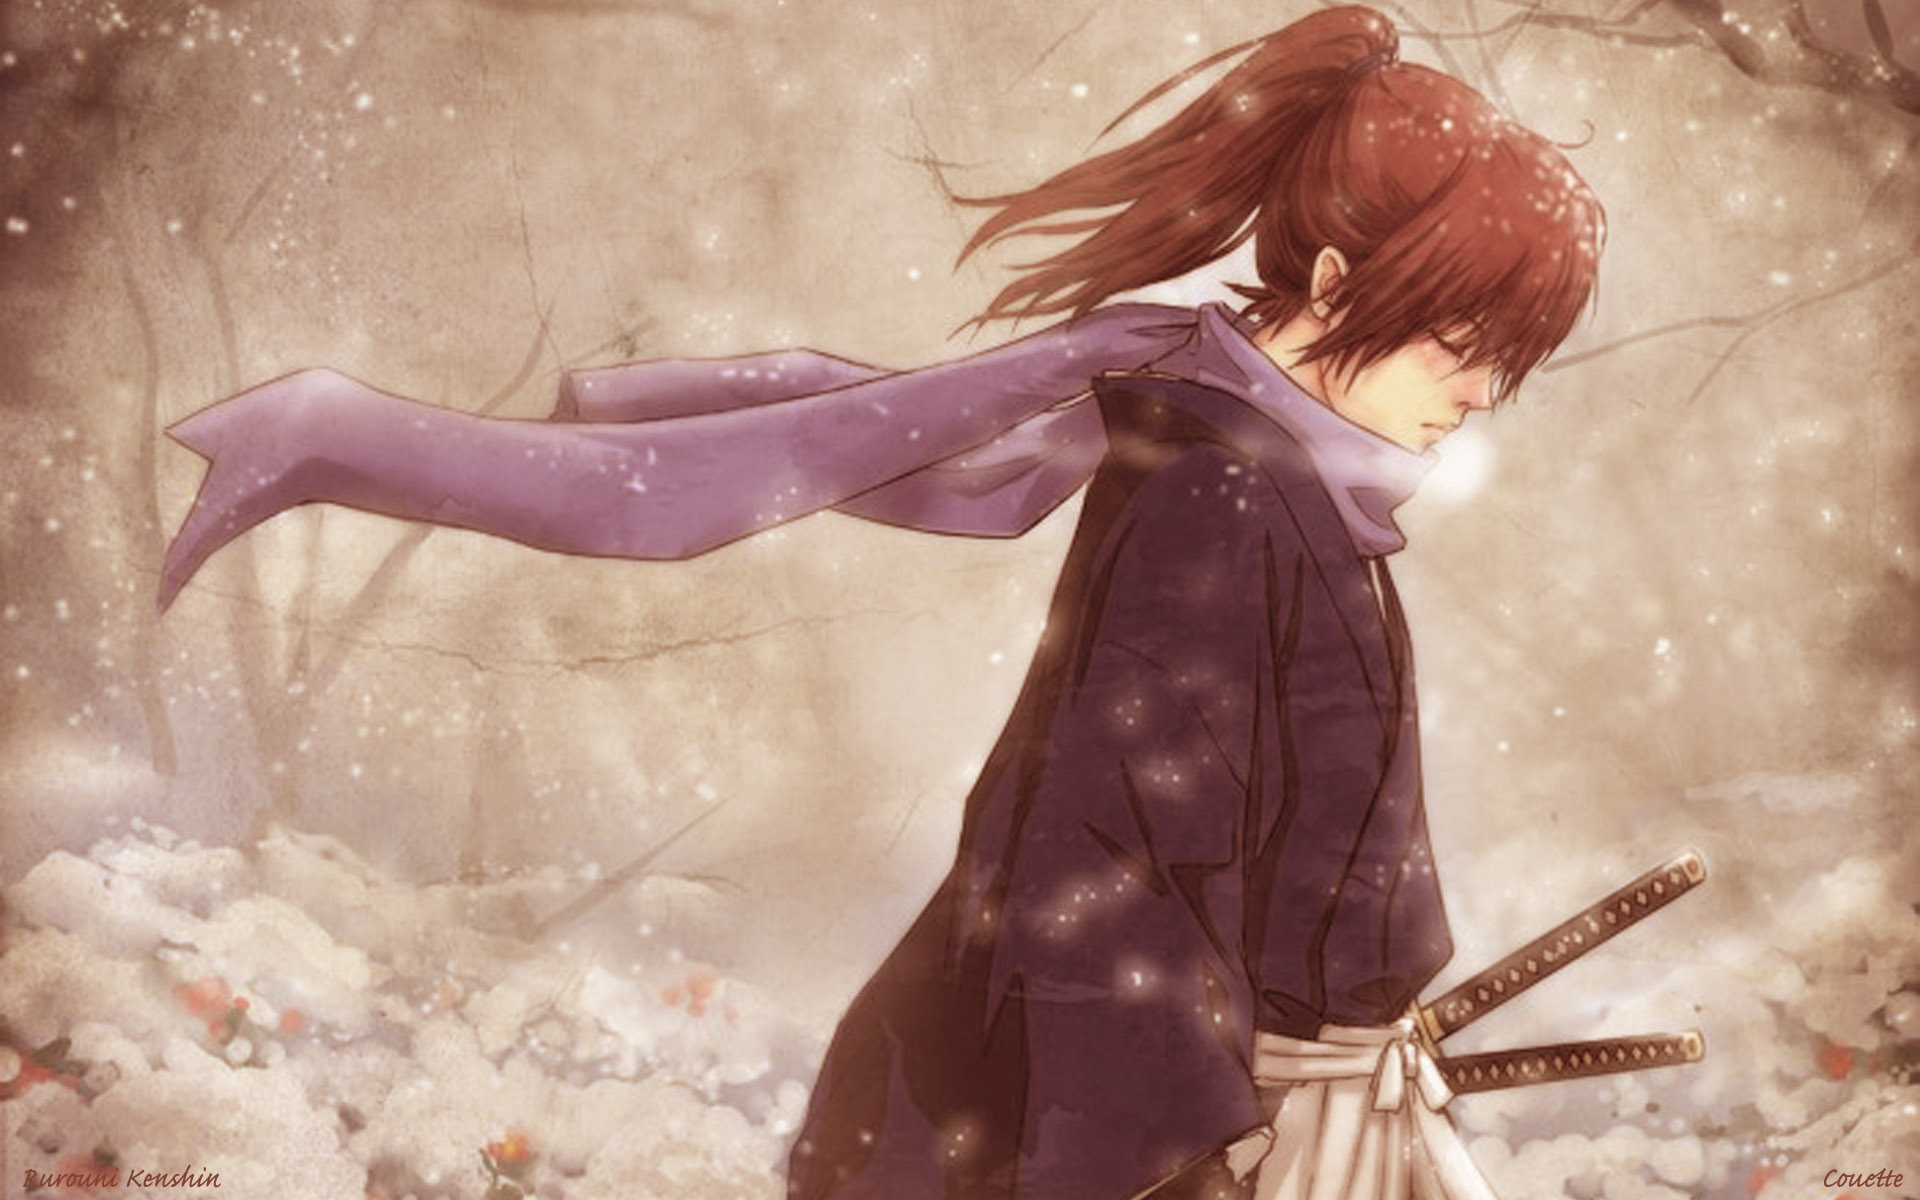 Rurouni kenshin full hd wallpaper and background image 1920x1200 anime rurouni kenshin wallpaper voltagebd Images